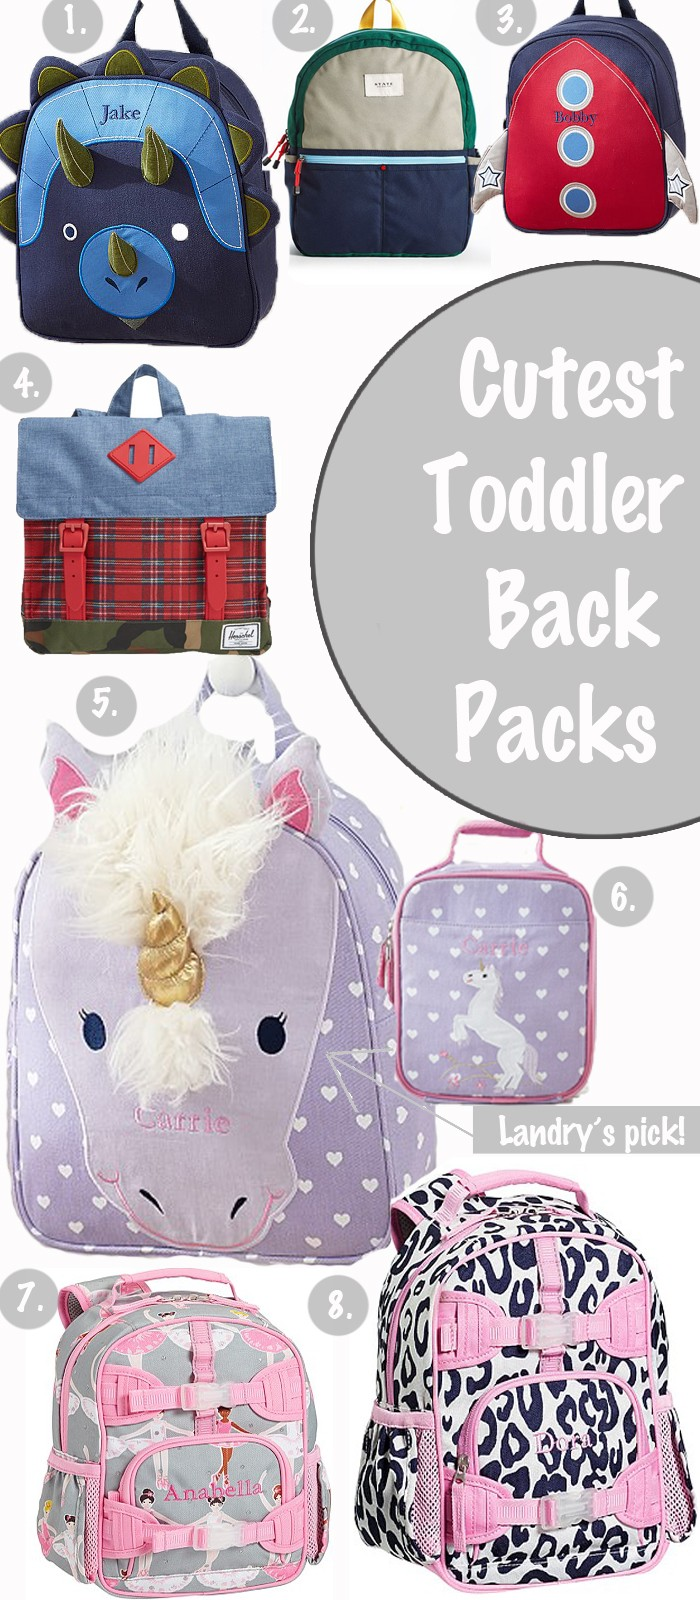 backpacks, toddler, pottery barn kids, toddler backpack